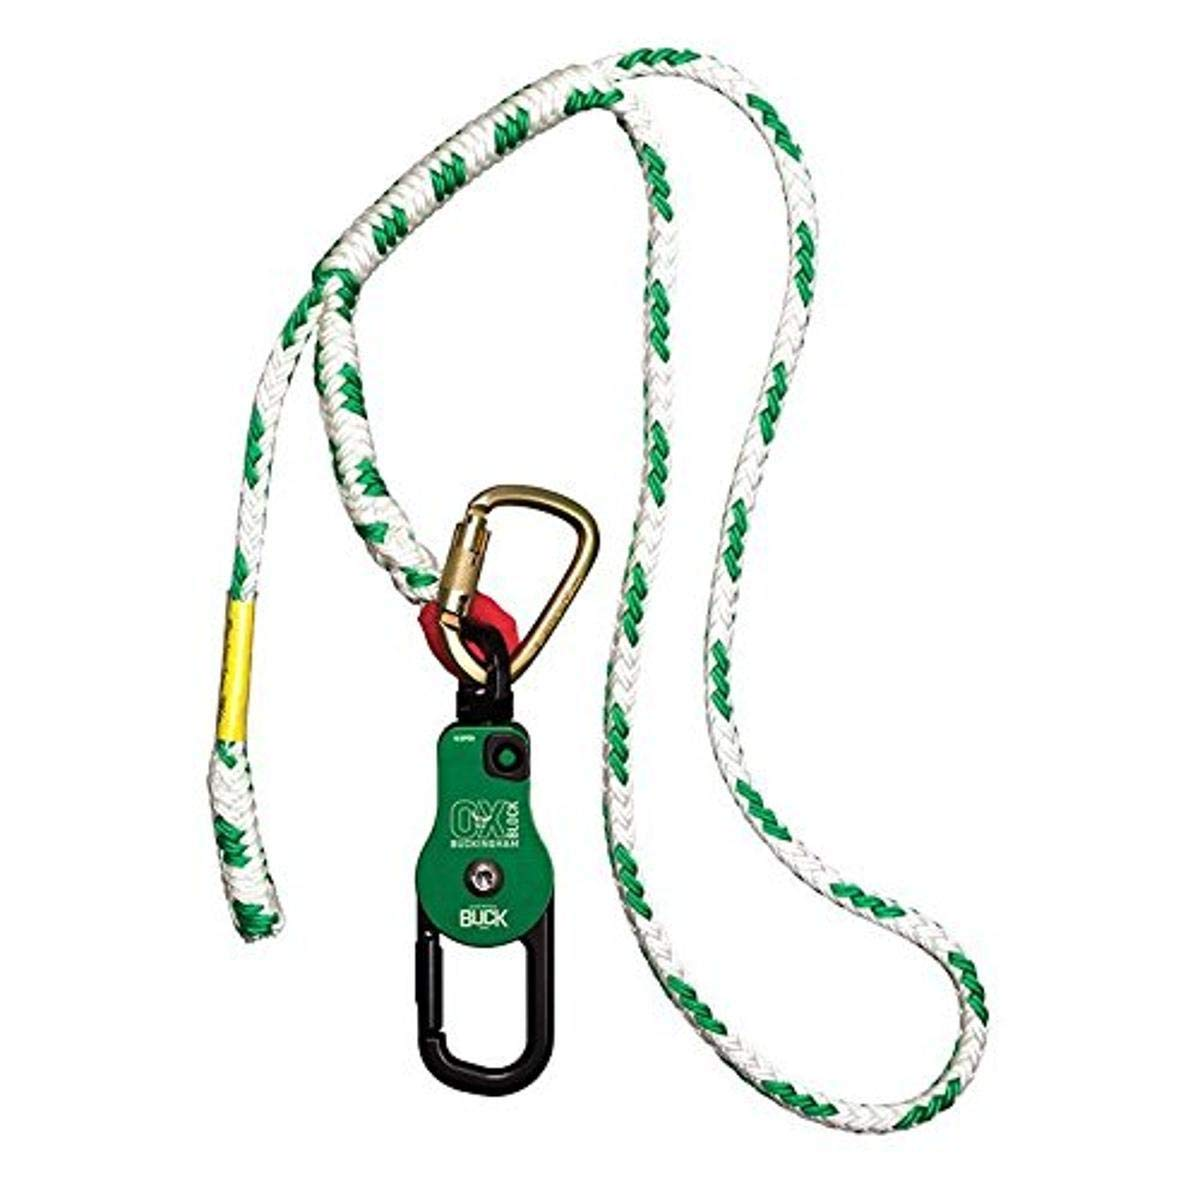 Buckingham 50061A-4 Ox Block with Miami Mall Adjustable Fees free and Carabiner Sling